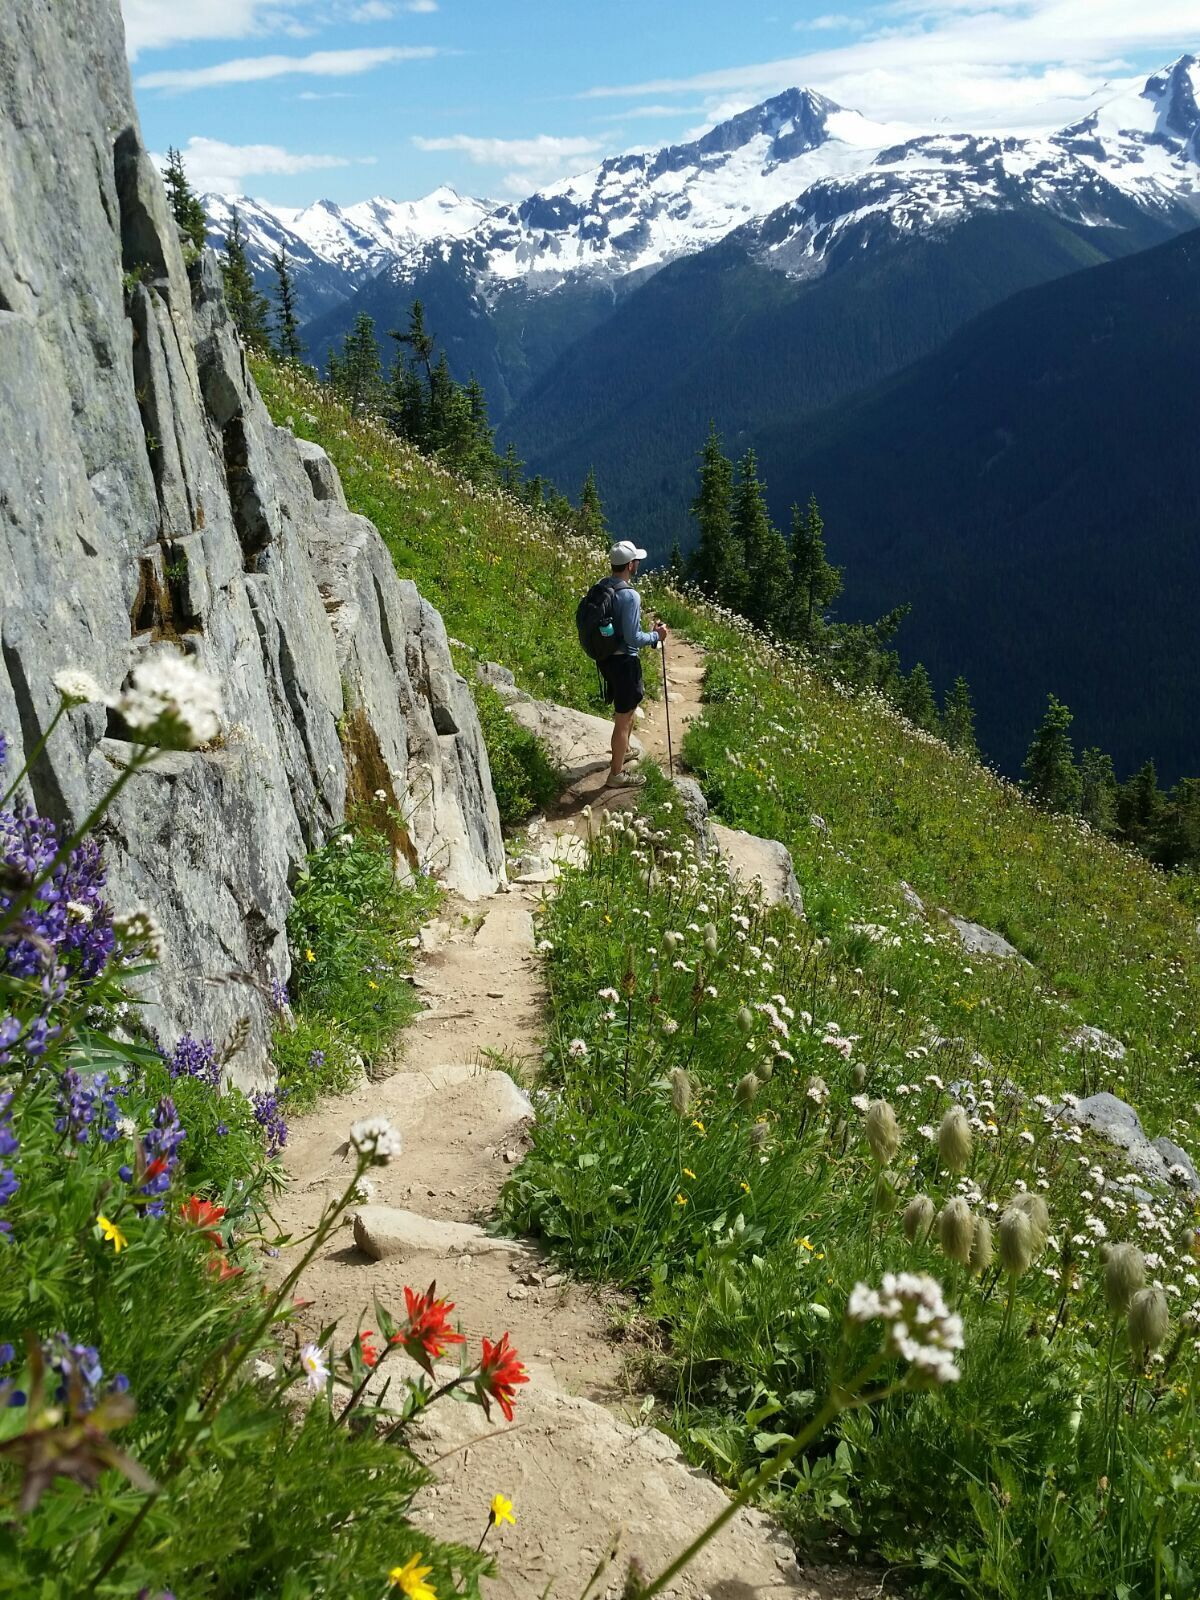 Bobby hiking the trails in whistler canada beautiful july